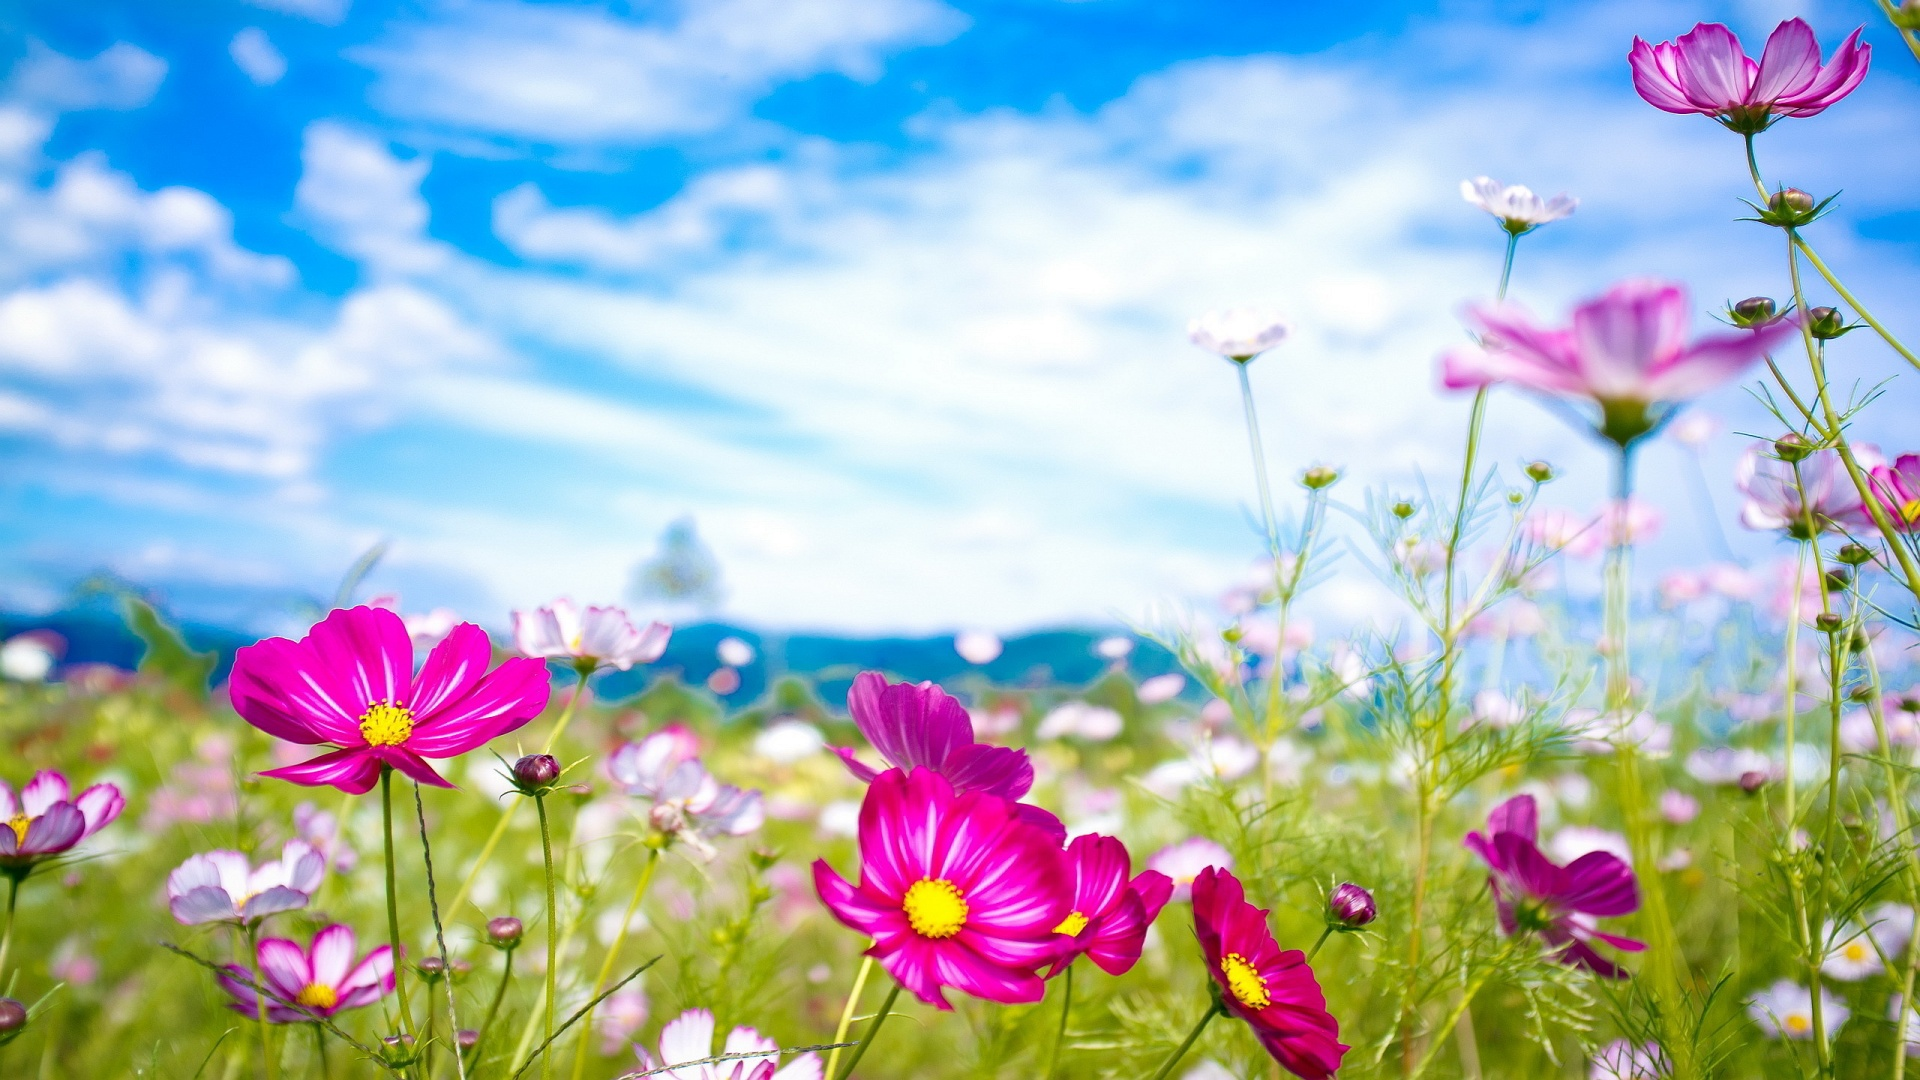 summer-flowers-wallpaper.jpg